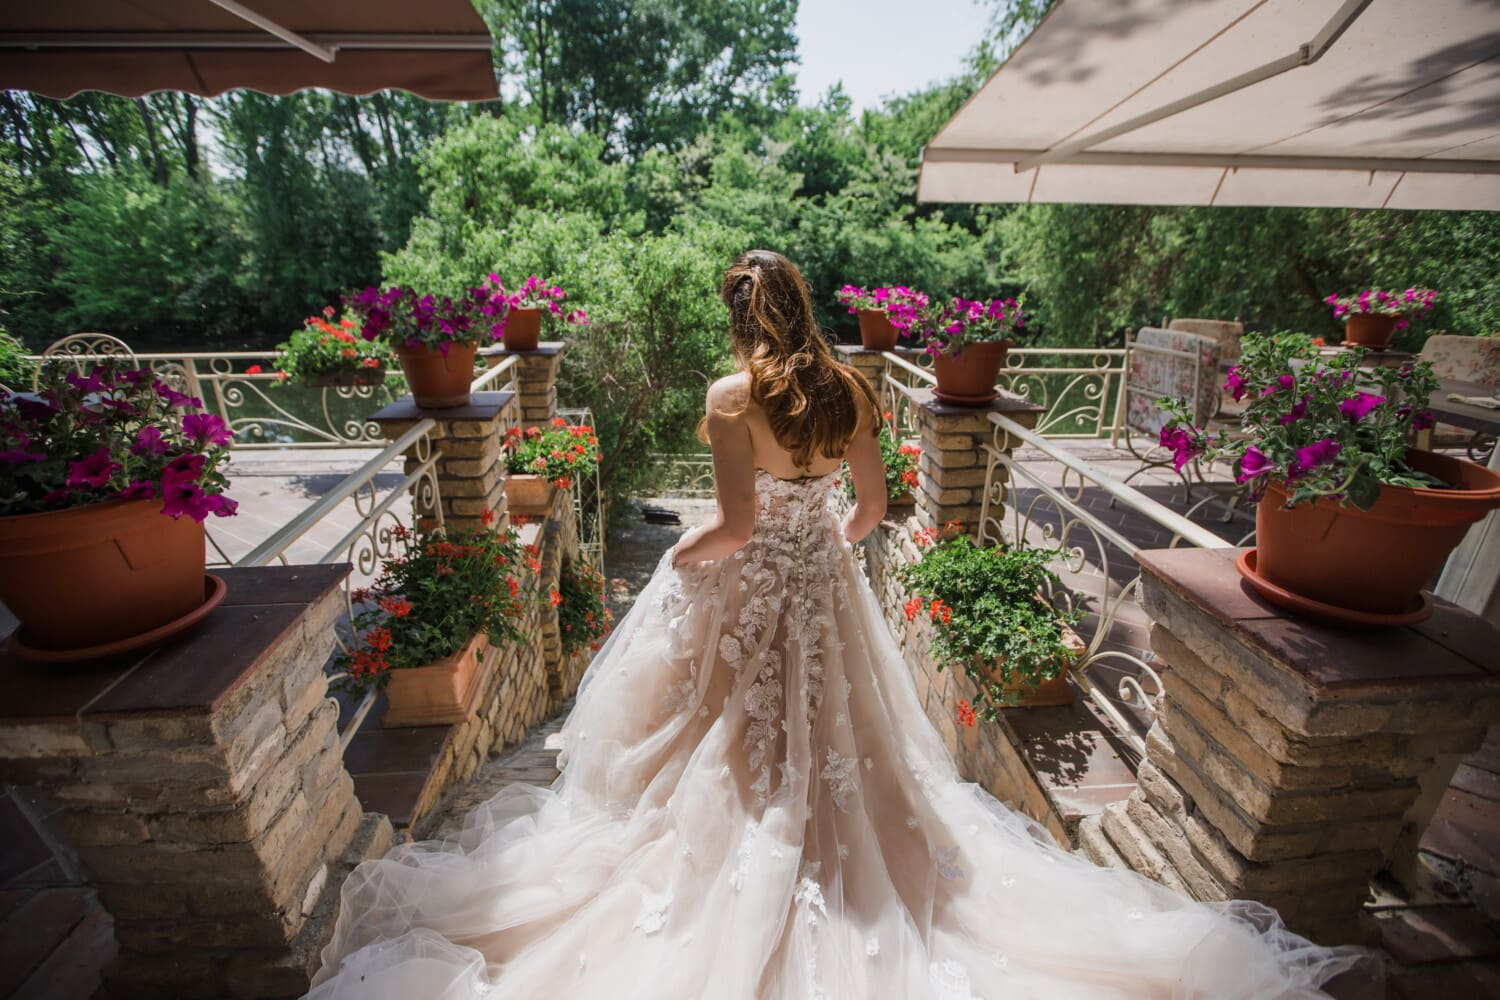 bride, flowerpot, flower garden, wedding dress, balcony, wedding, love, marriage, flower, bouquet